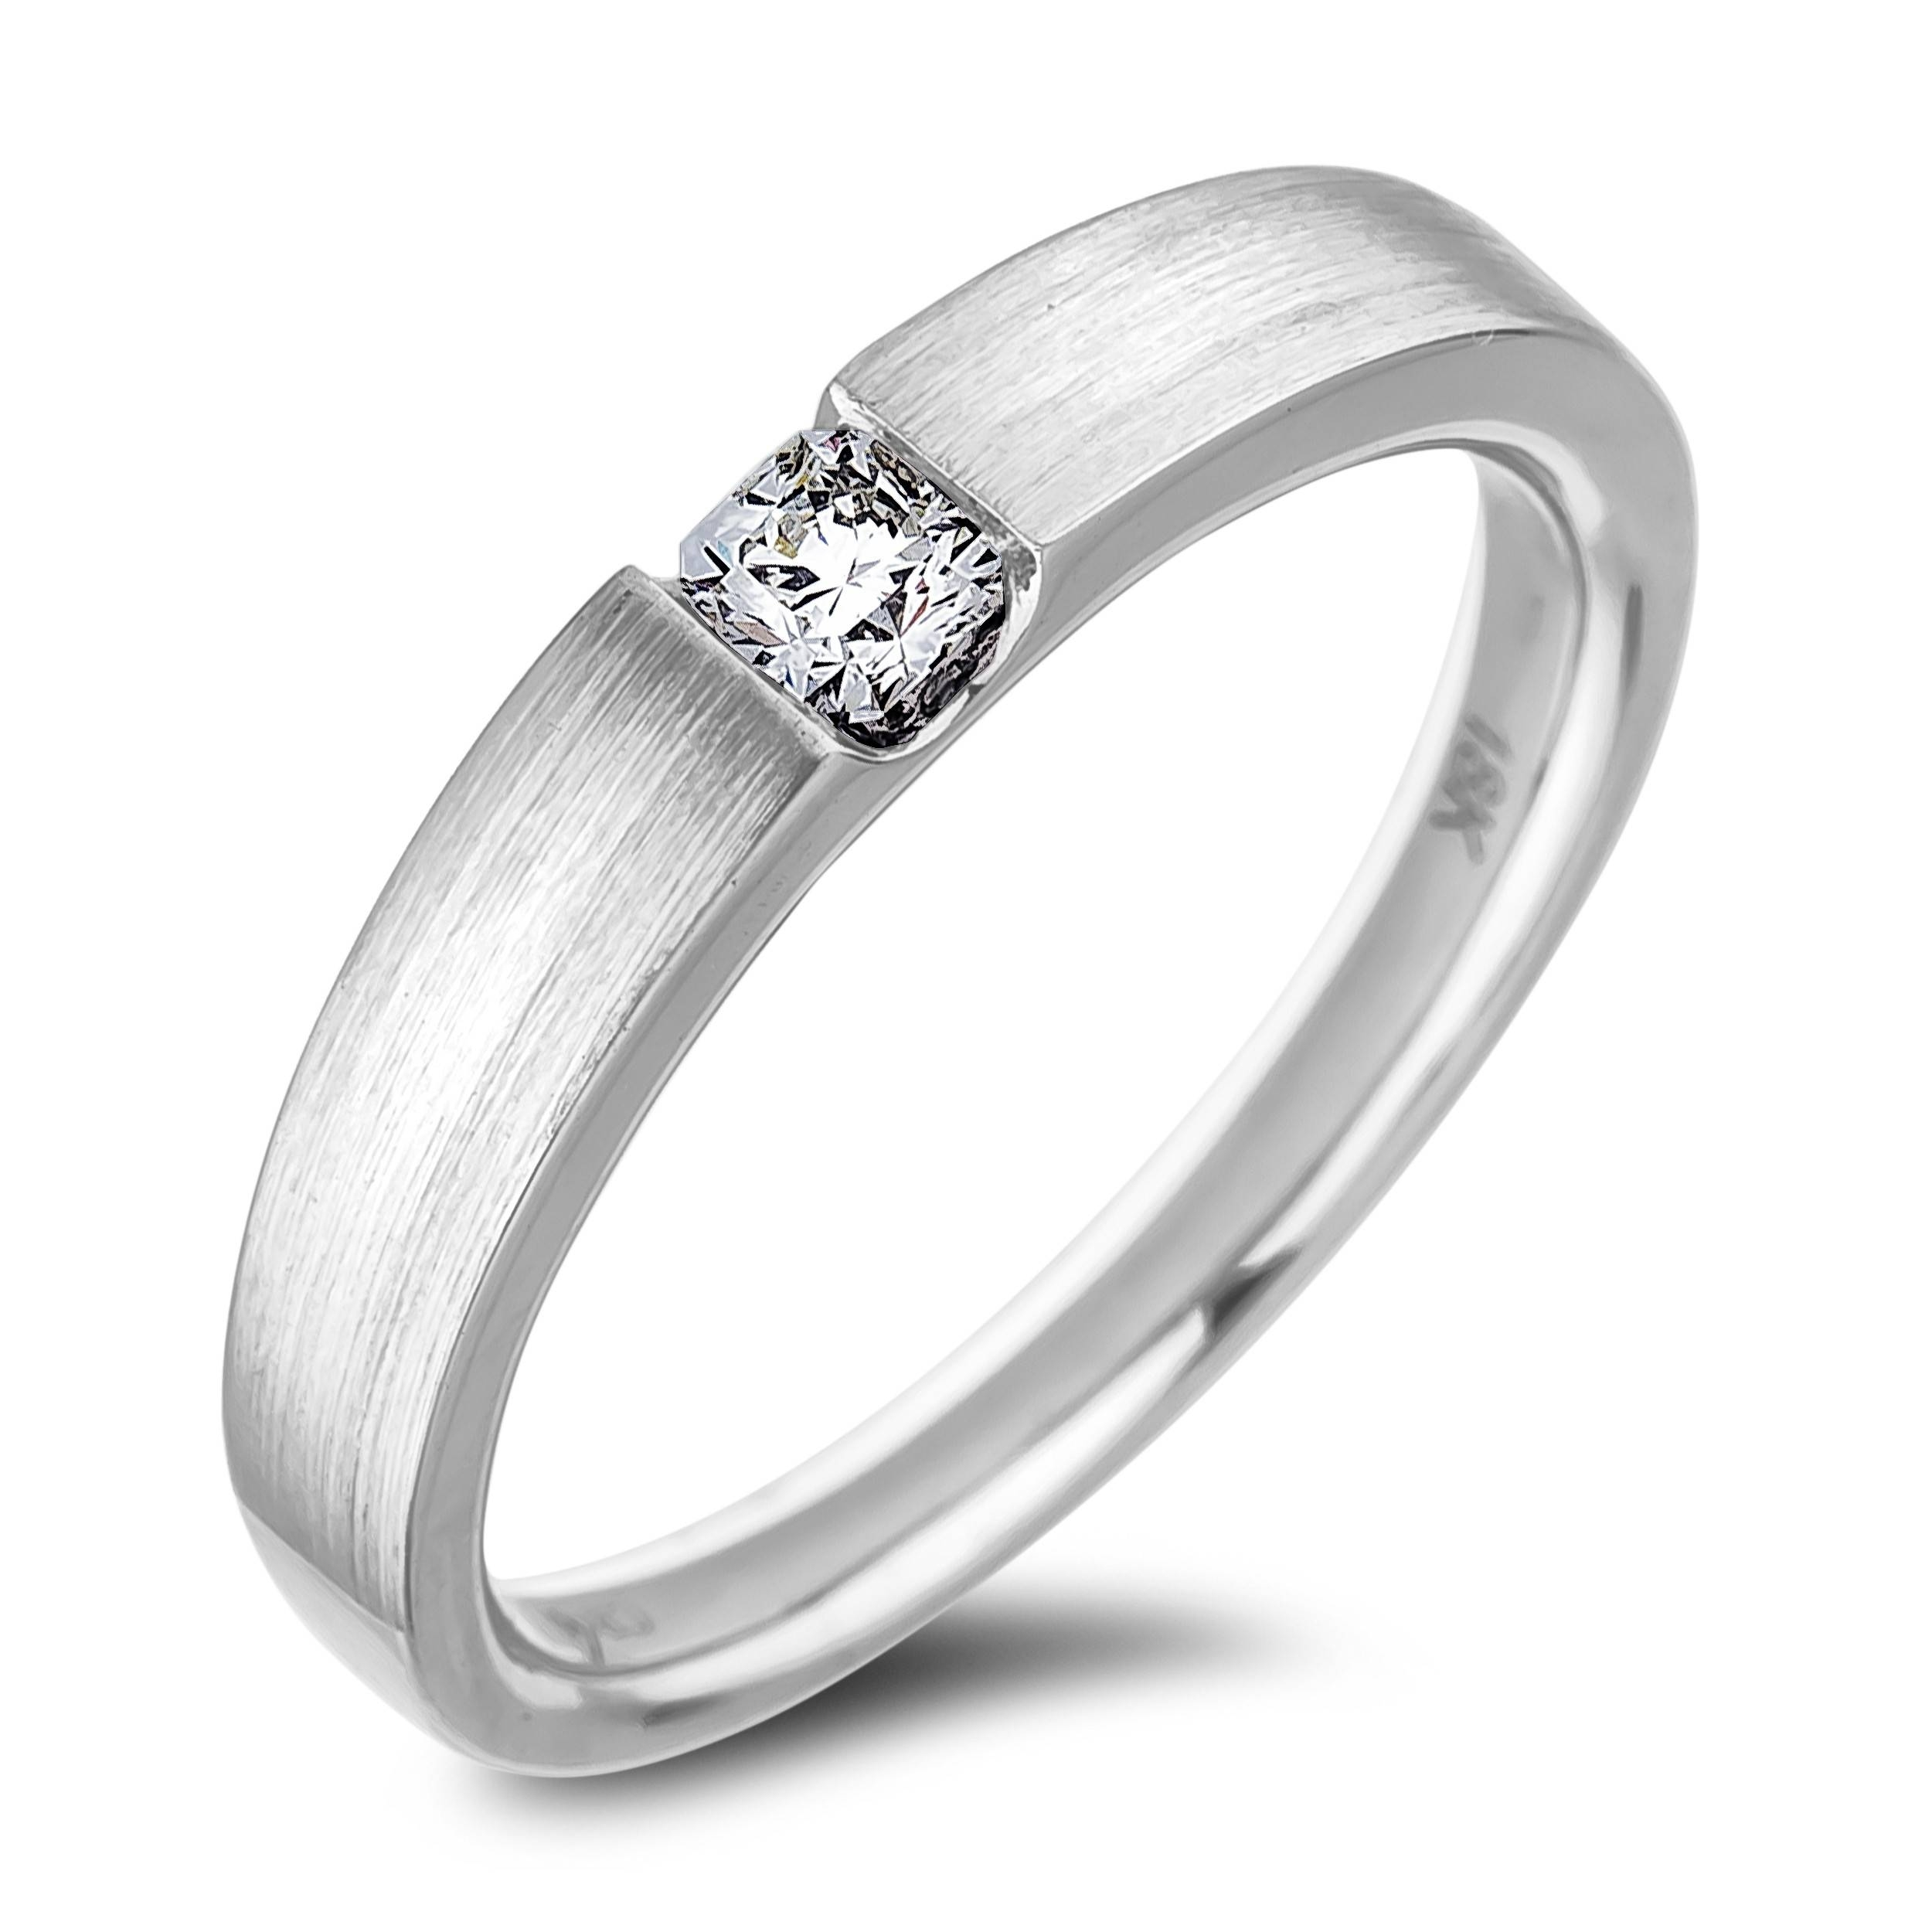 Lugaro | Forevermark Tension Set Diamond Ring Regarding Tension Set Engagement Rings With Wedding Bands (View 3 of 15)